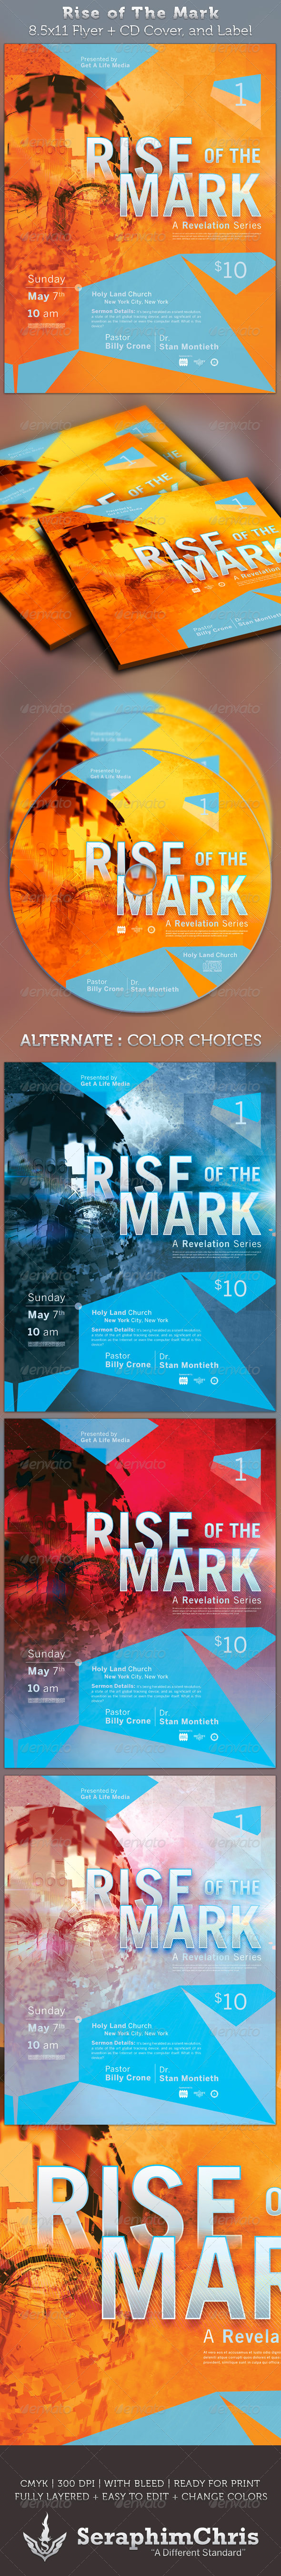 Rise of The Mark Full Page Flyer and CD Cover - Church Flyers